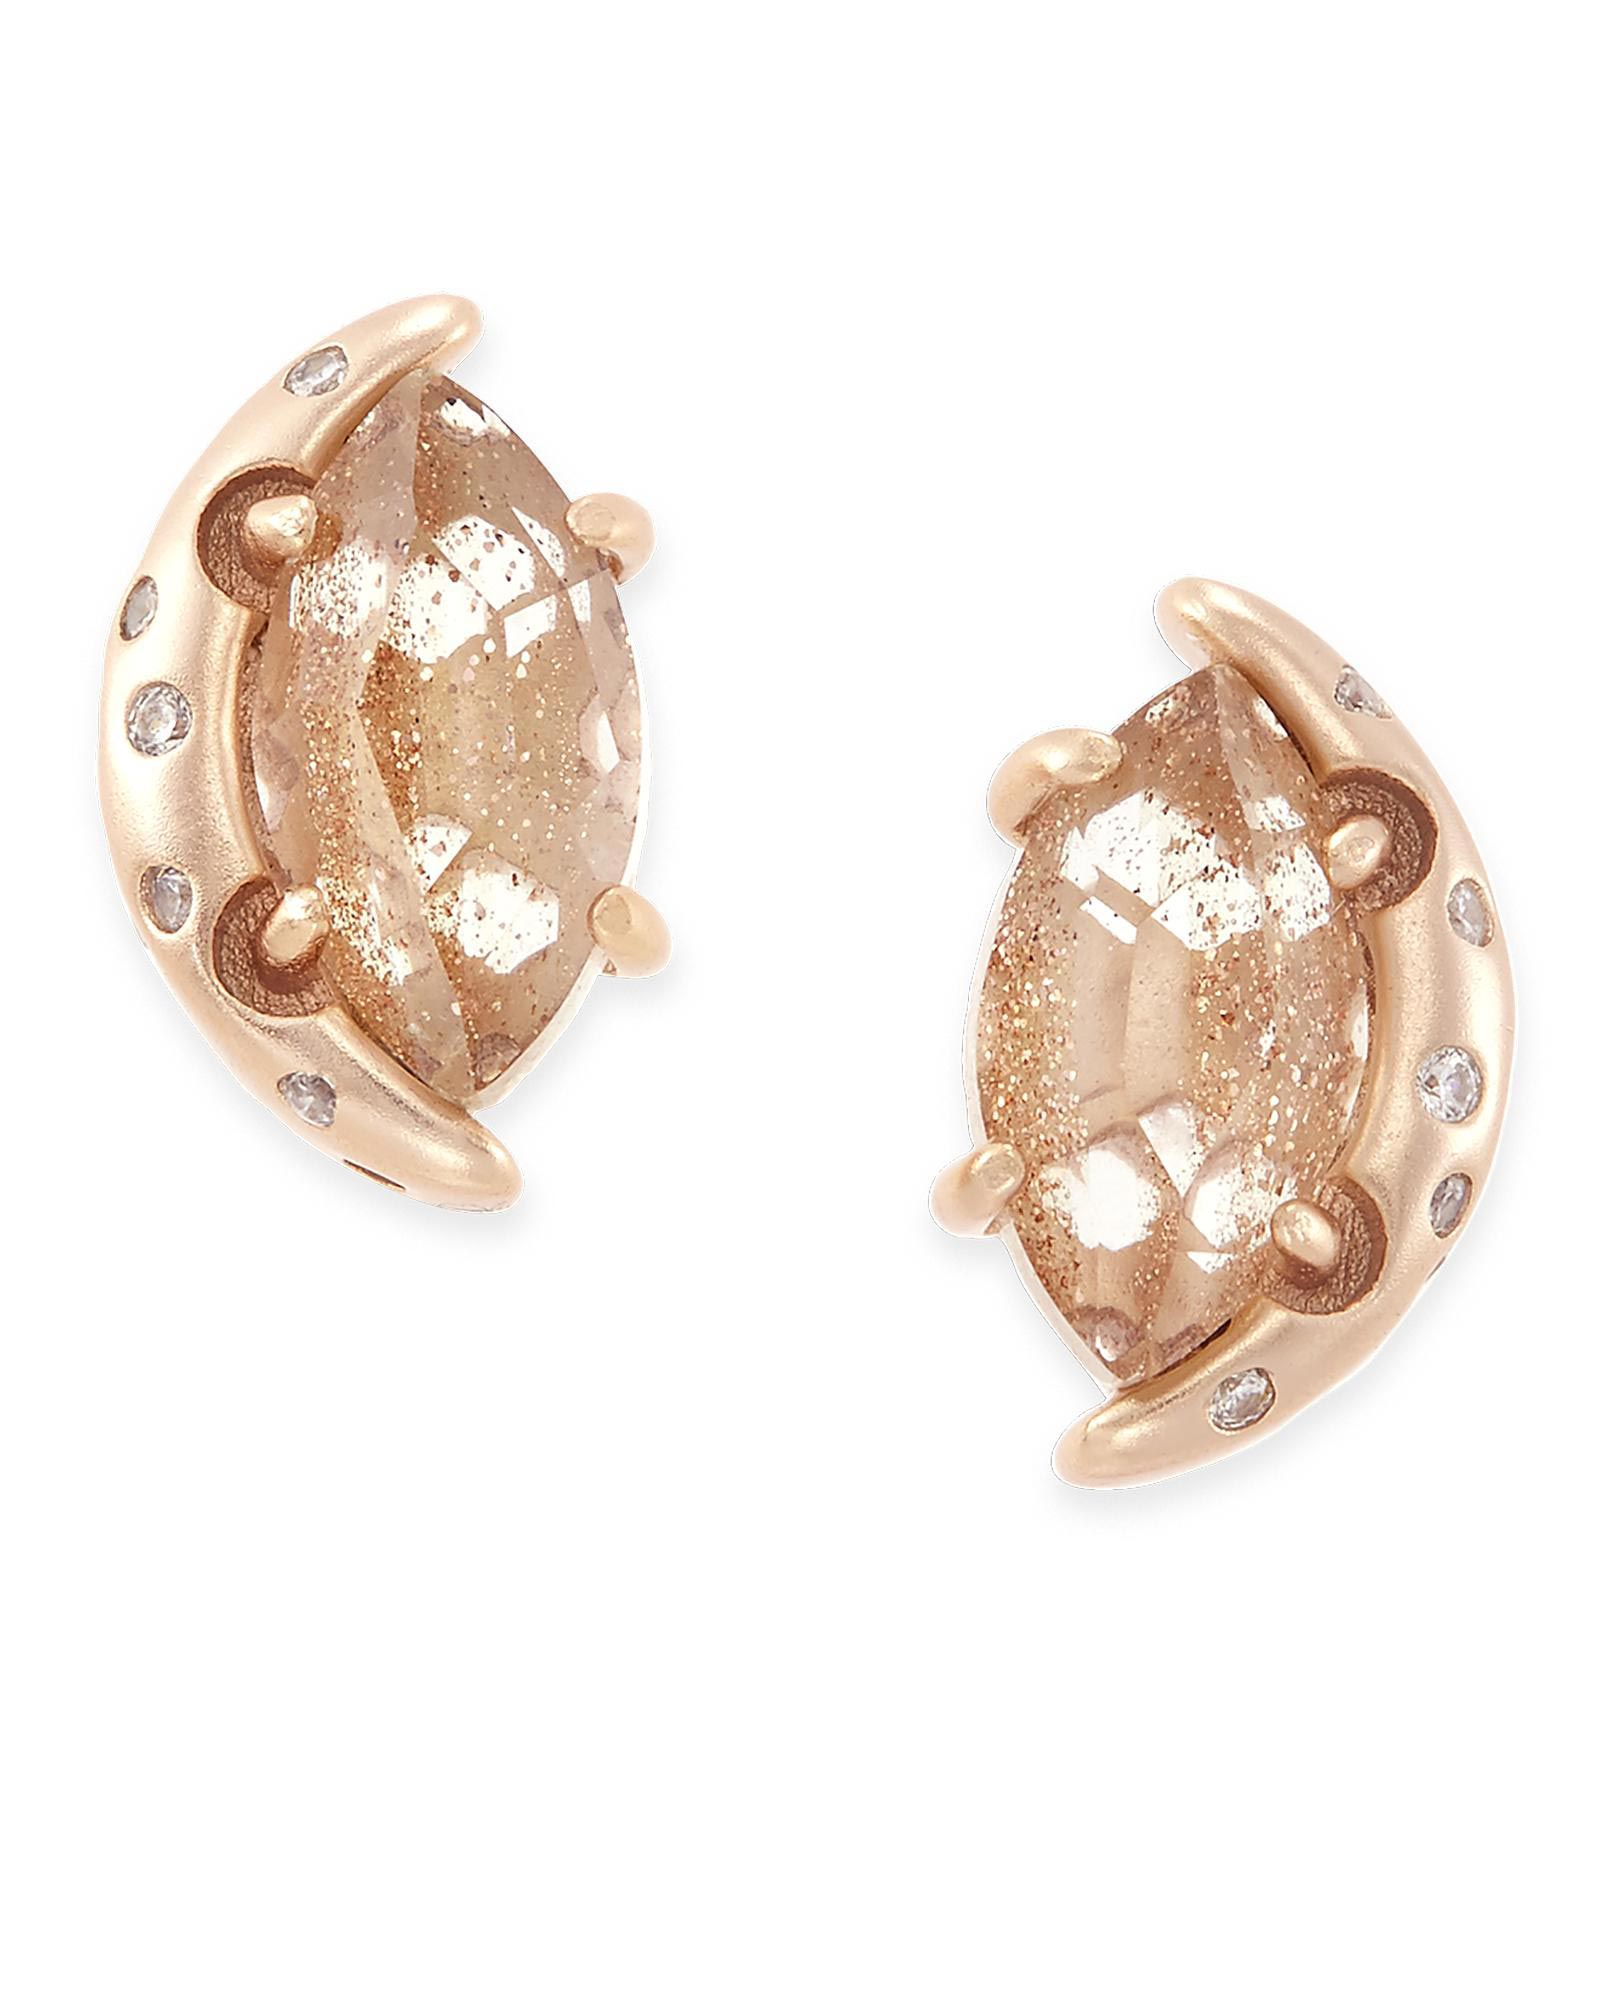 Marie Stud Earrings in Gold Dusted Glass